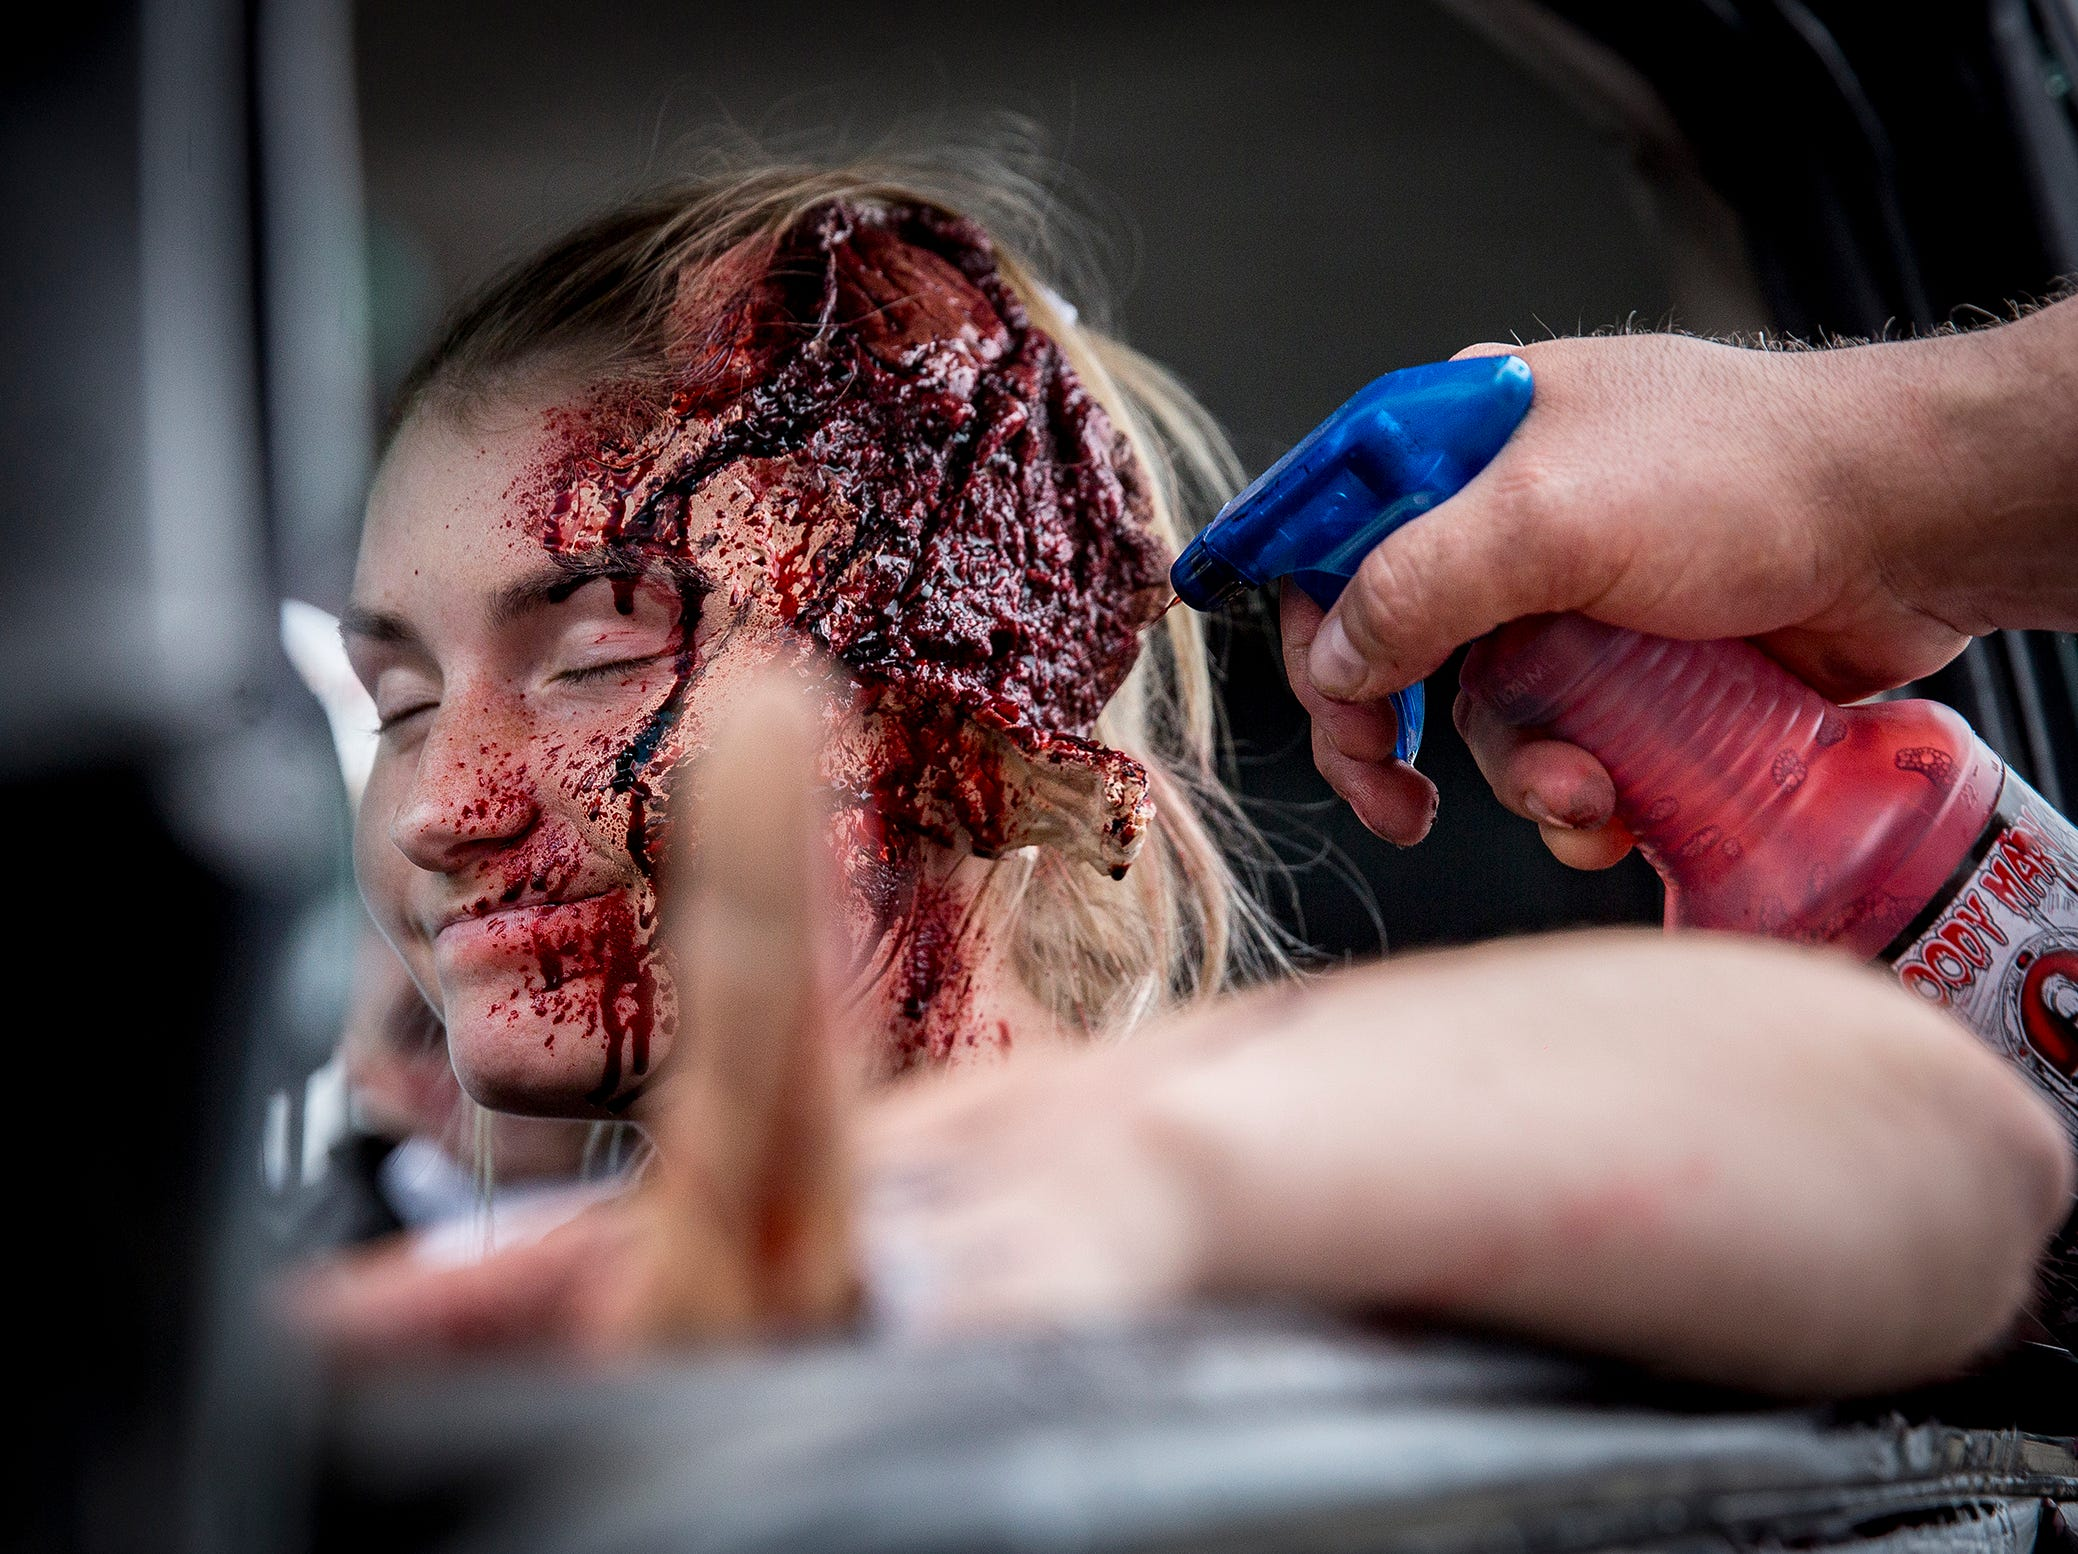 Volunteer actor Rylee Huffman has makeup and other effects applied before the first group of attendees arrived for the 2019 Living Proof Crash Re-Enactment at Central Wednesday. The event seeks to raise awareness of the dangers of driving while intoxicated with re-enactments of crashes, court scenes and funerals. Makeup artist Brian Blair donated time and material for this year's Living Proof.